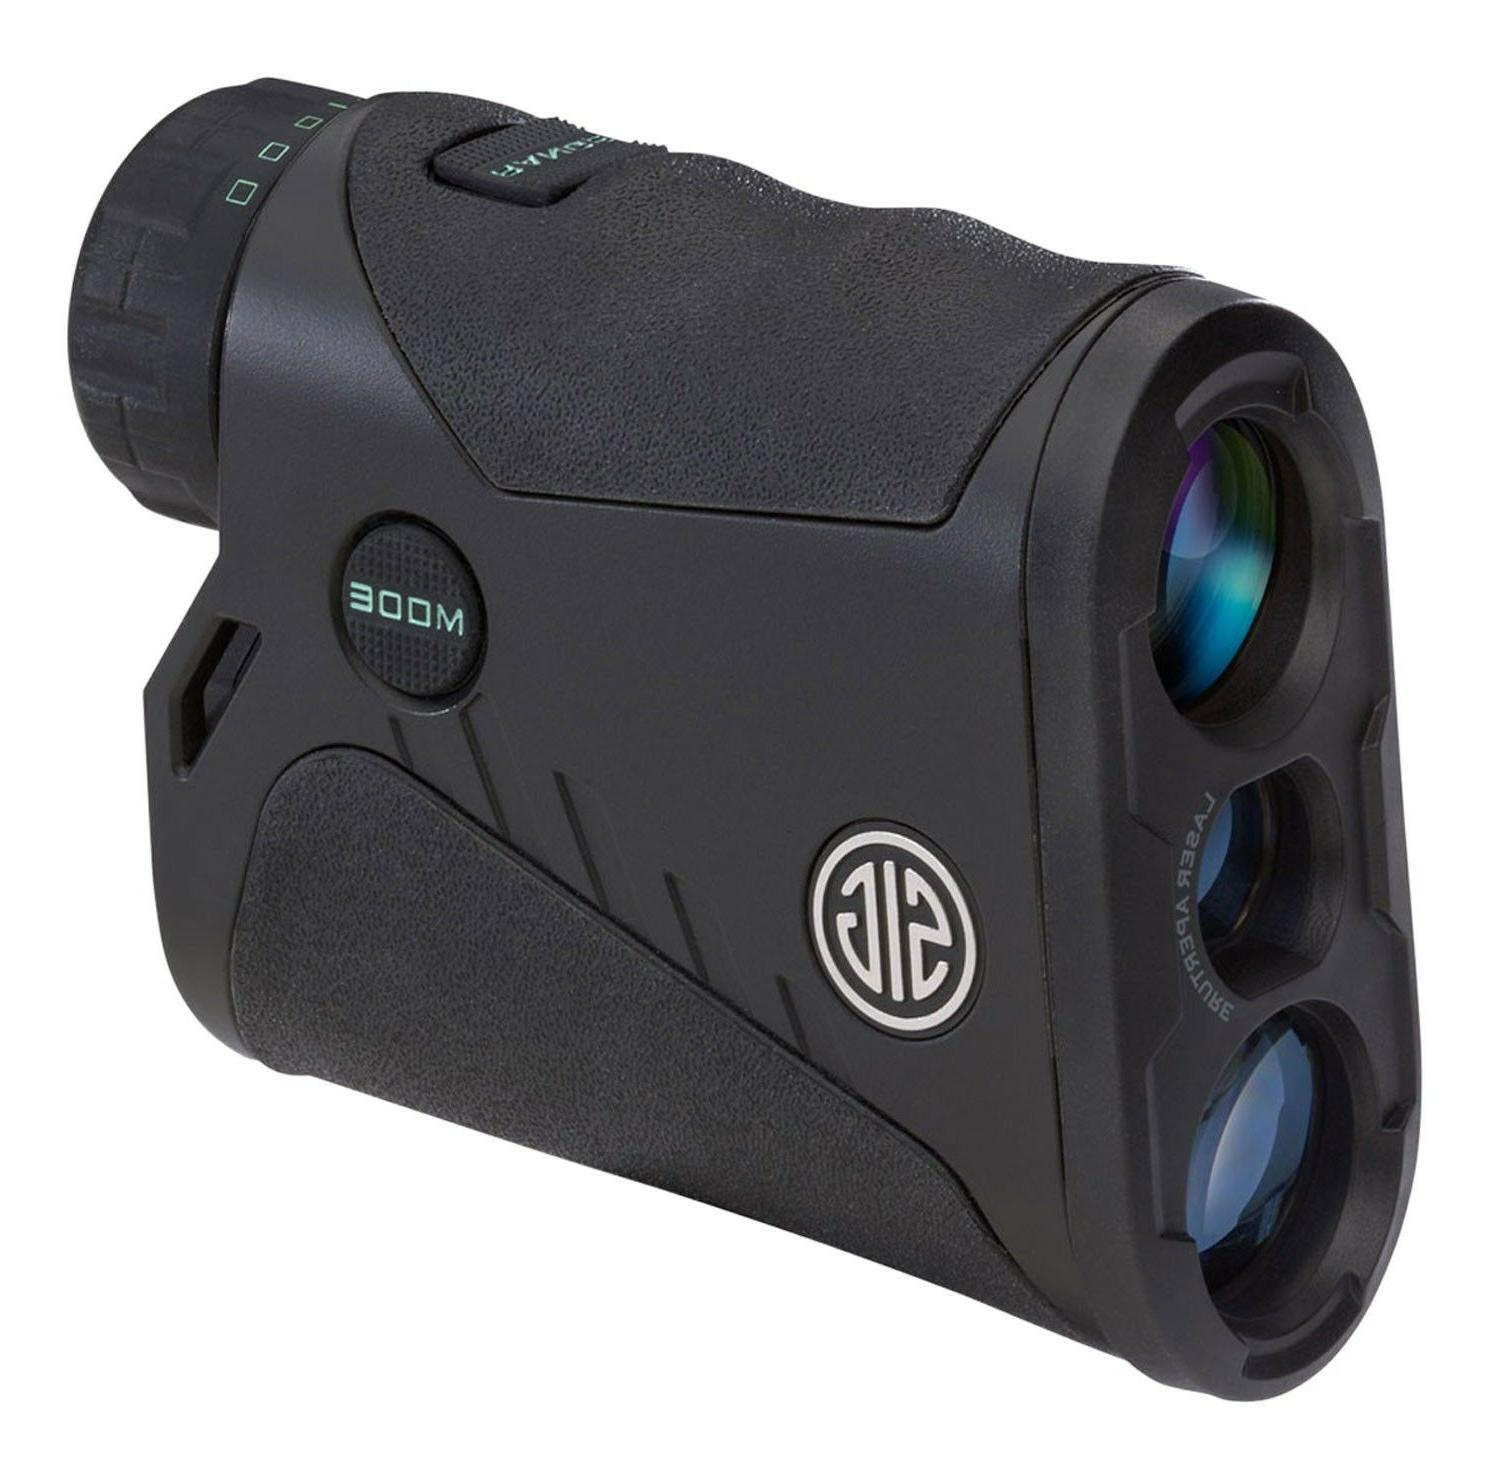 kilo850 lsr range finder blk